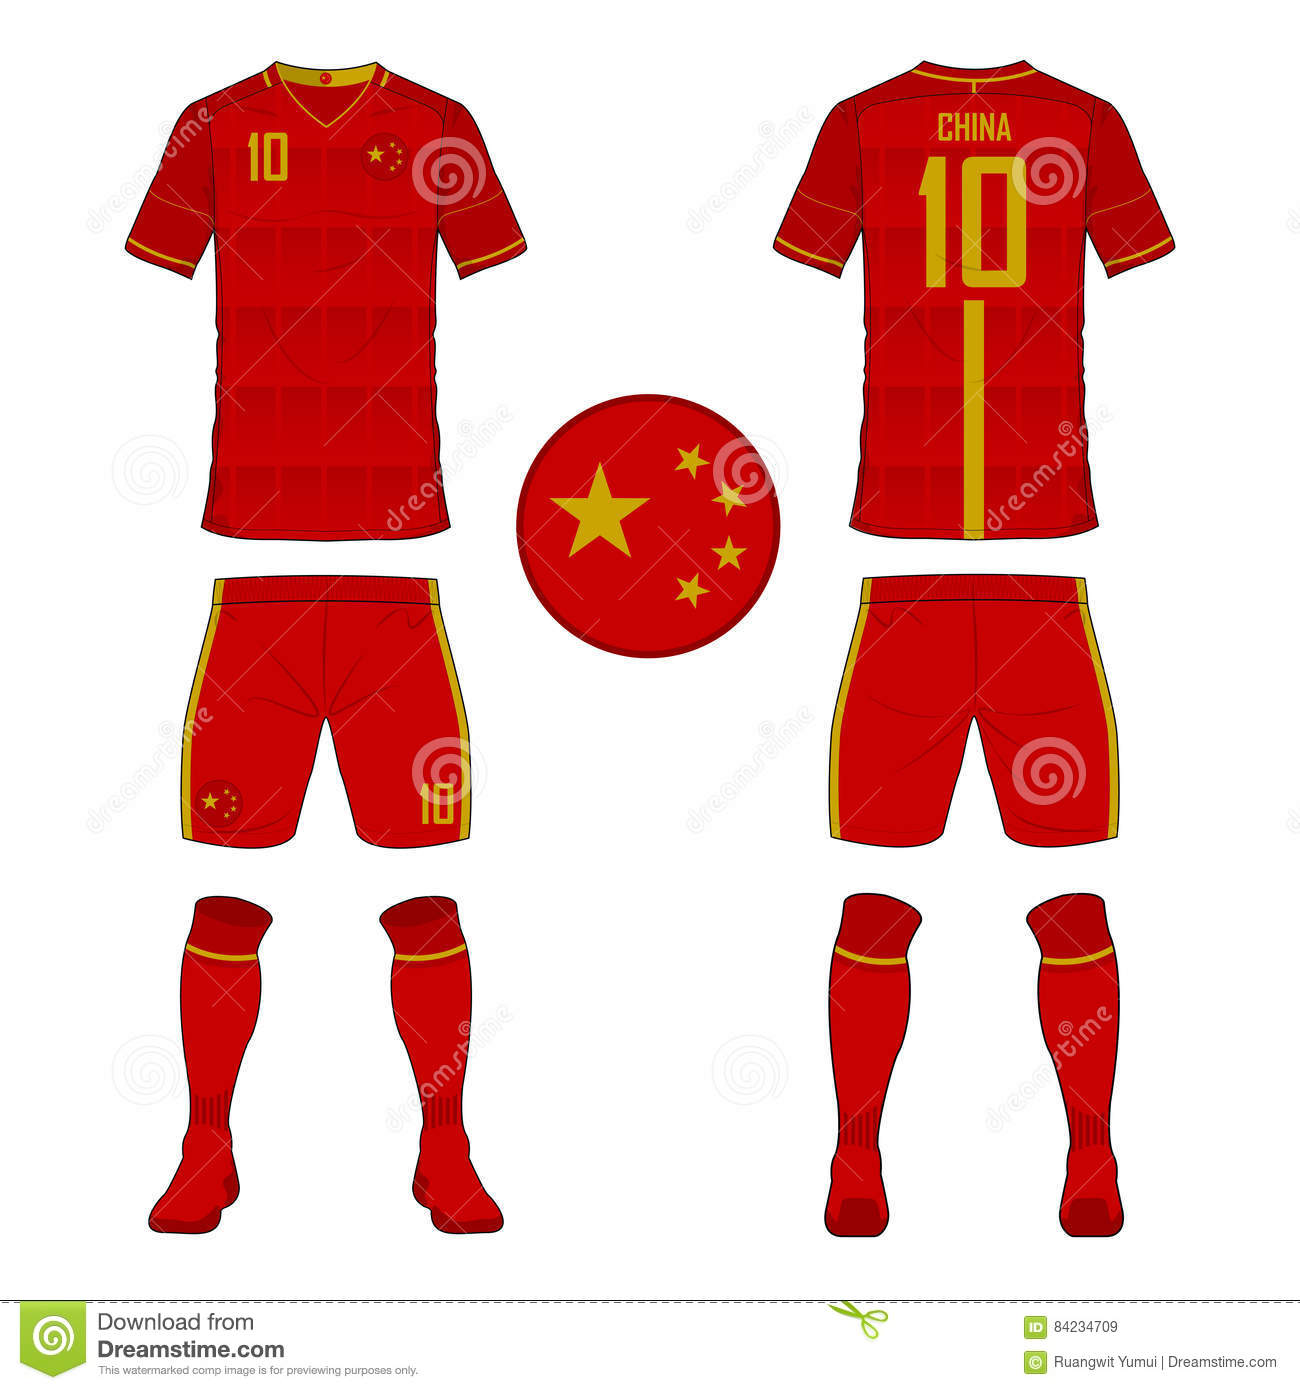 3dd29e4e0e6 Set of soccer jersey or football kit template for China national football  team.